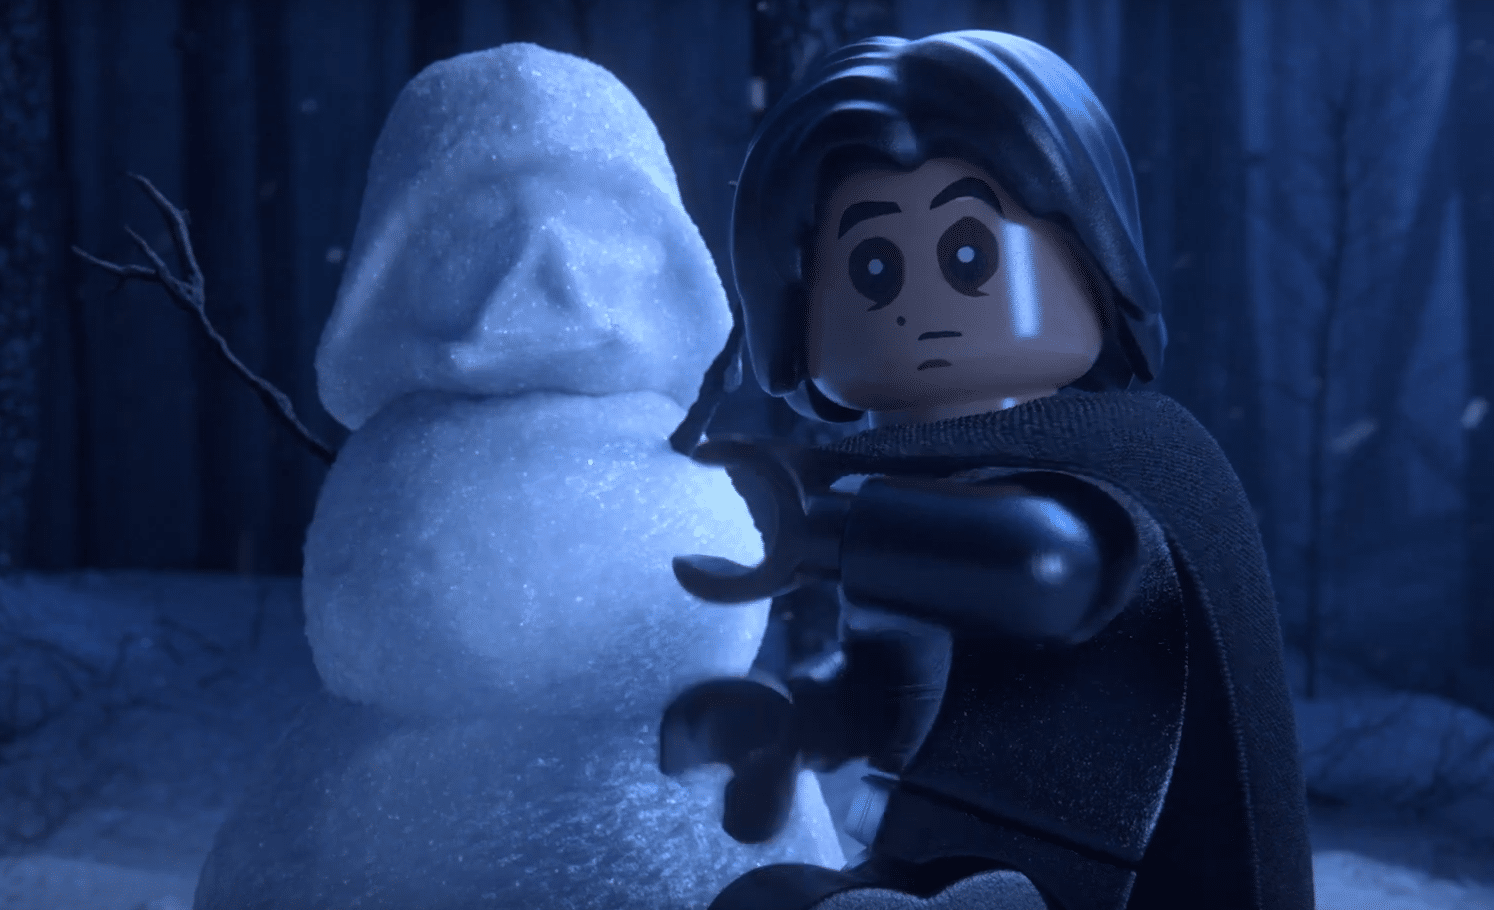 Lustige Szenen in LEGO Star Wars: The Skywalker Saga